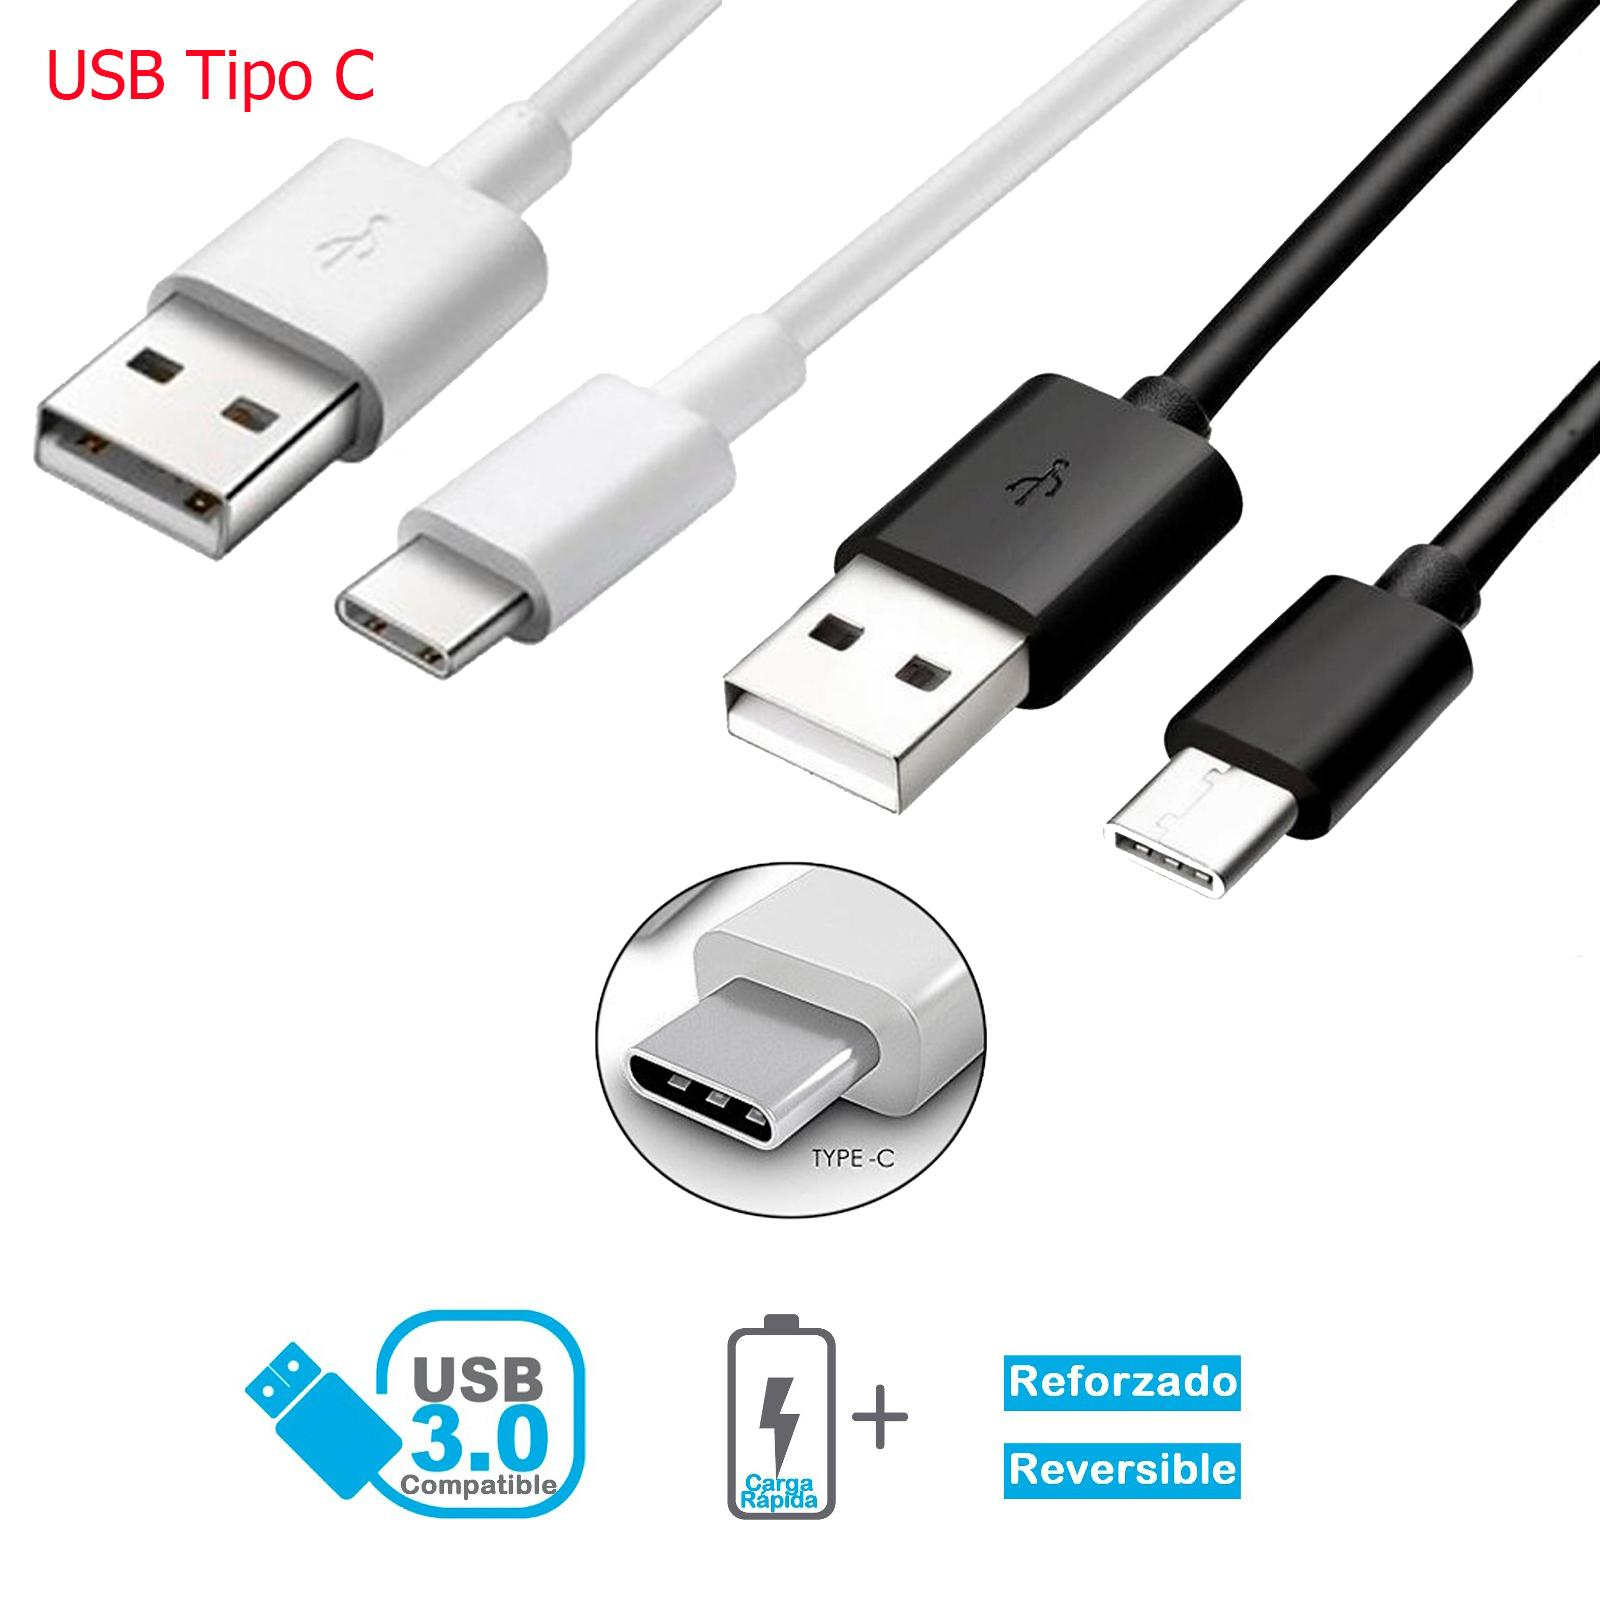 USB Type C Cord For Samsung Galaxy A8 + (2018) Of Quick Charge And Data 1 Poke Length And 2 Meters